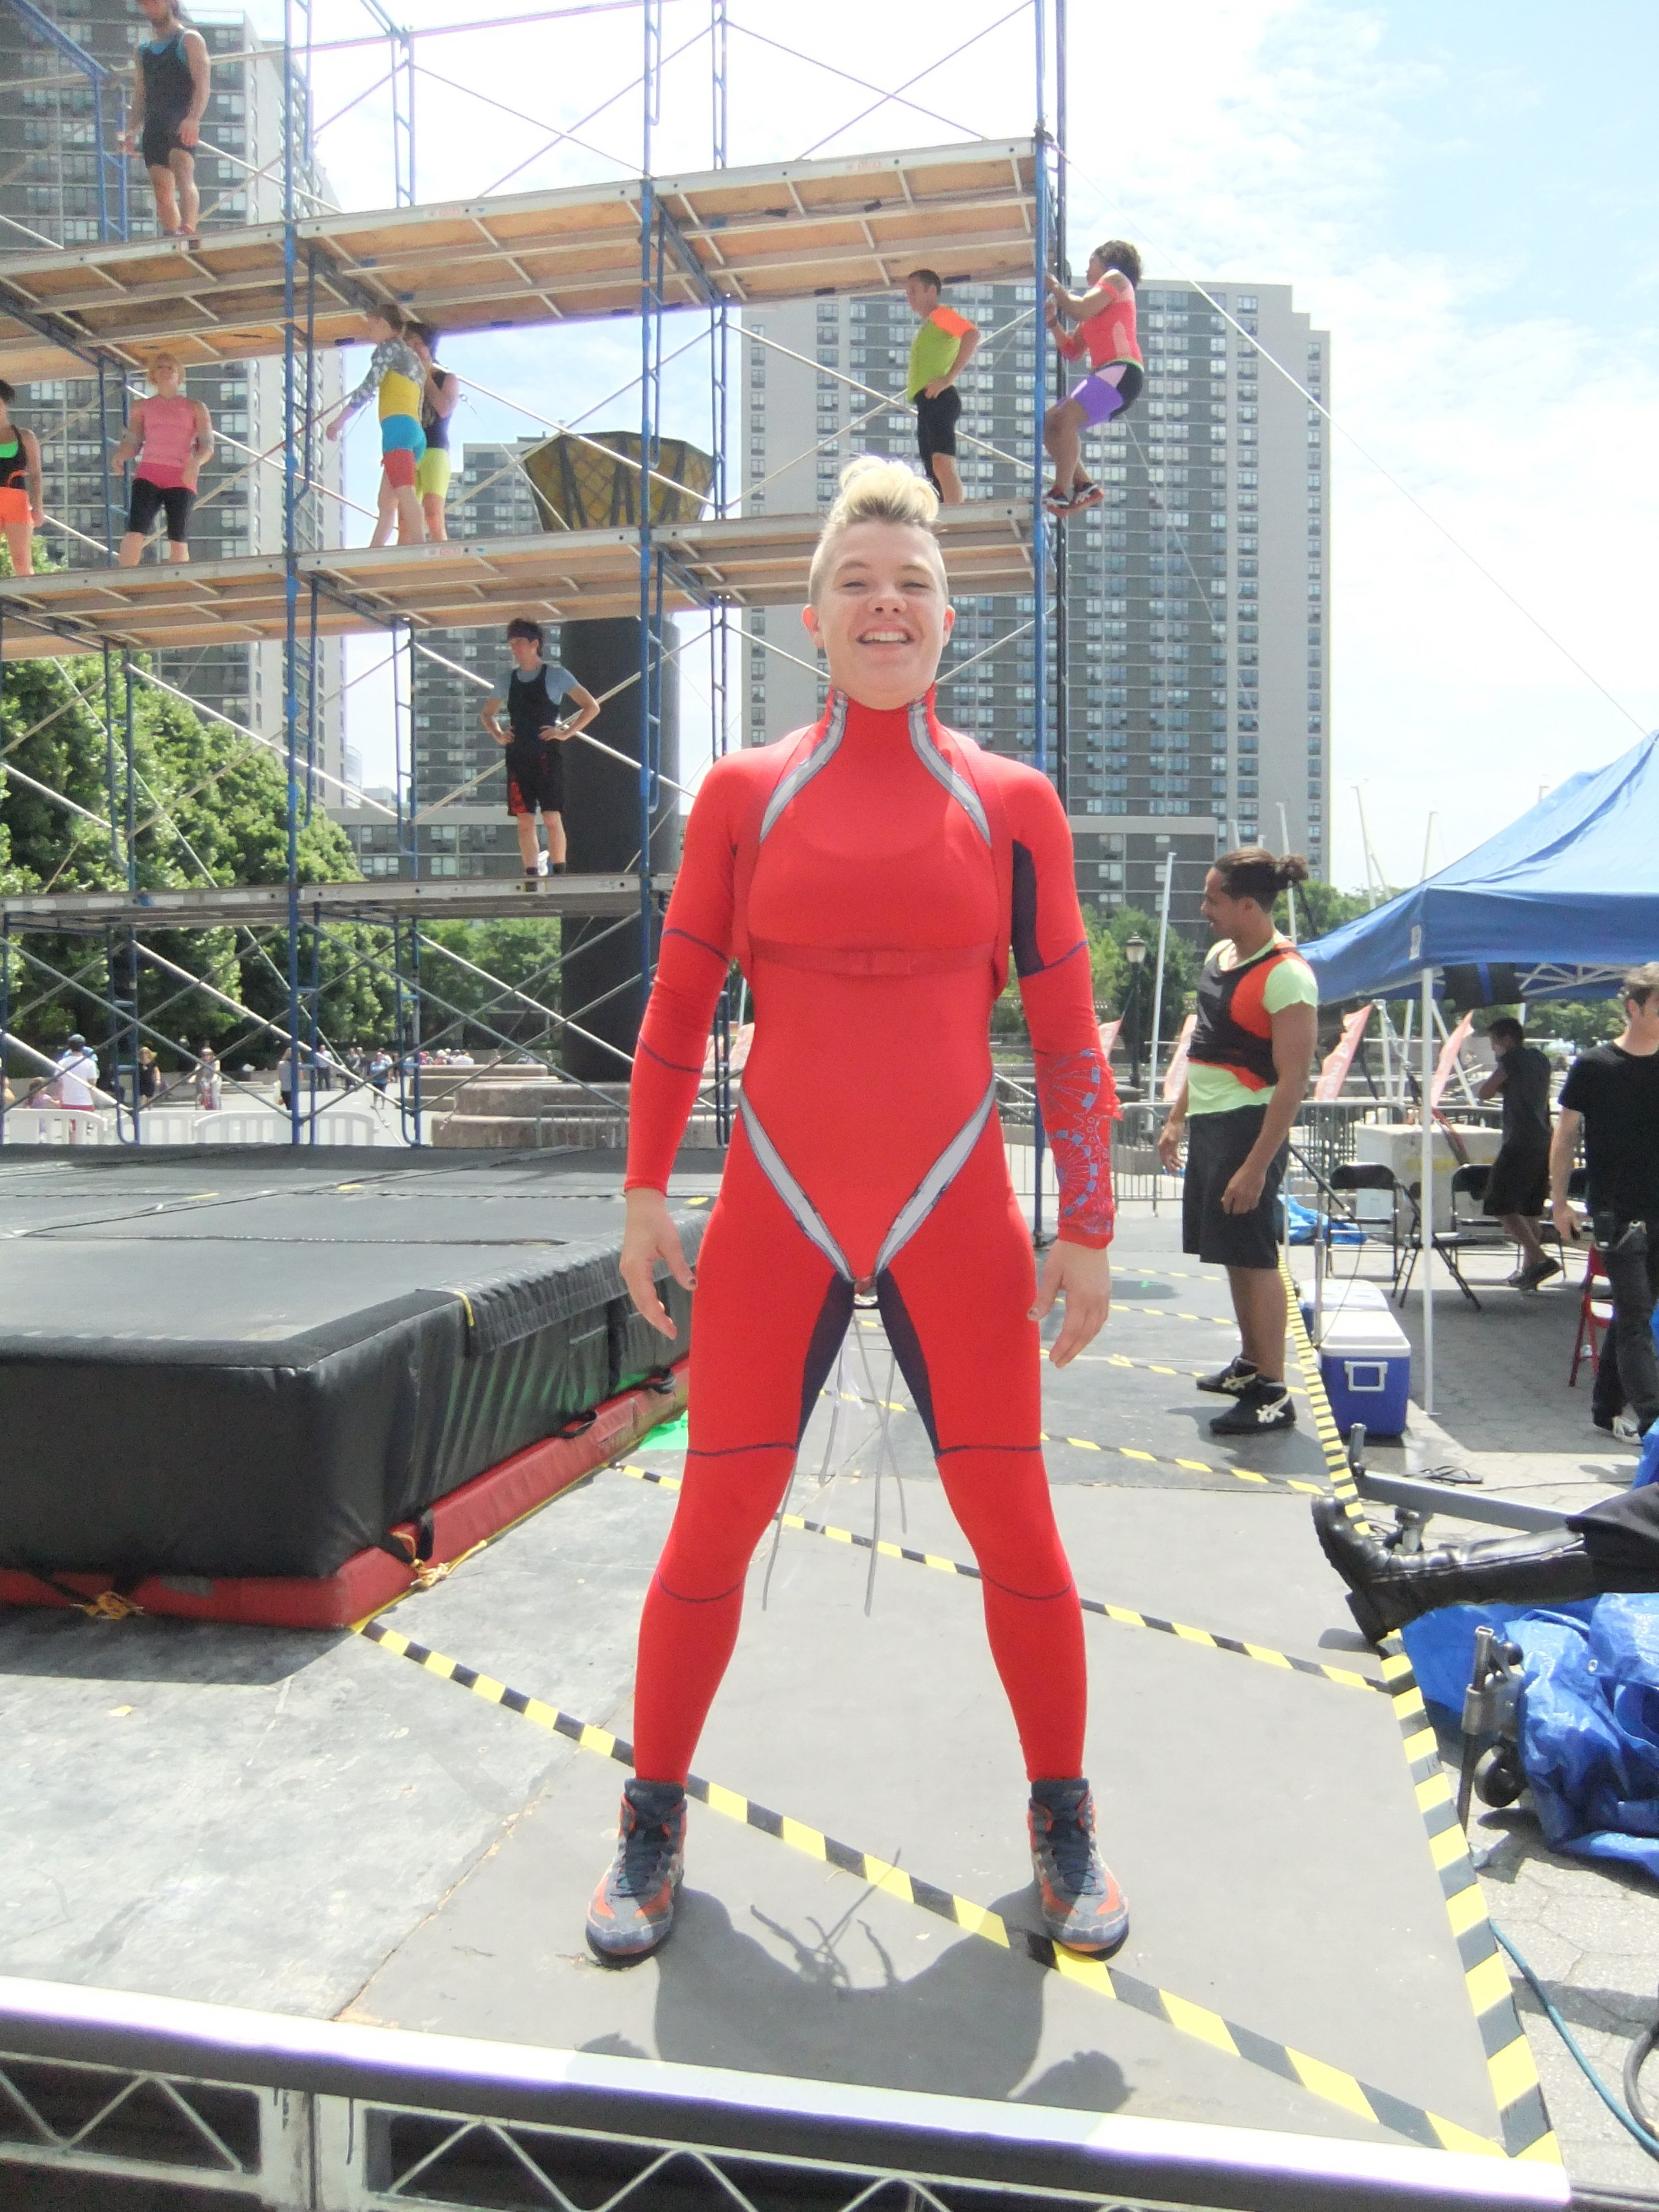 Jackie testing suit outside at the River to River Festival.